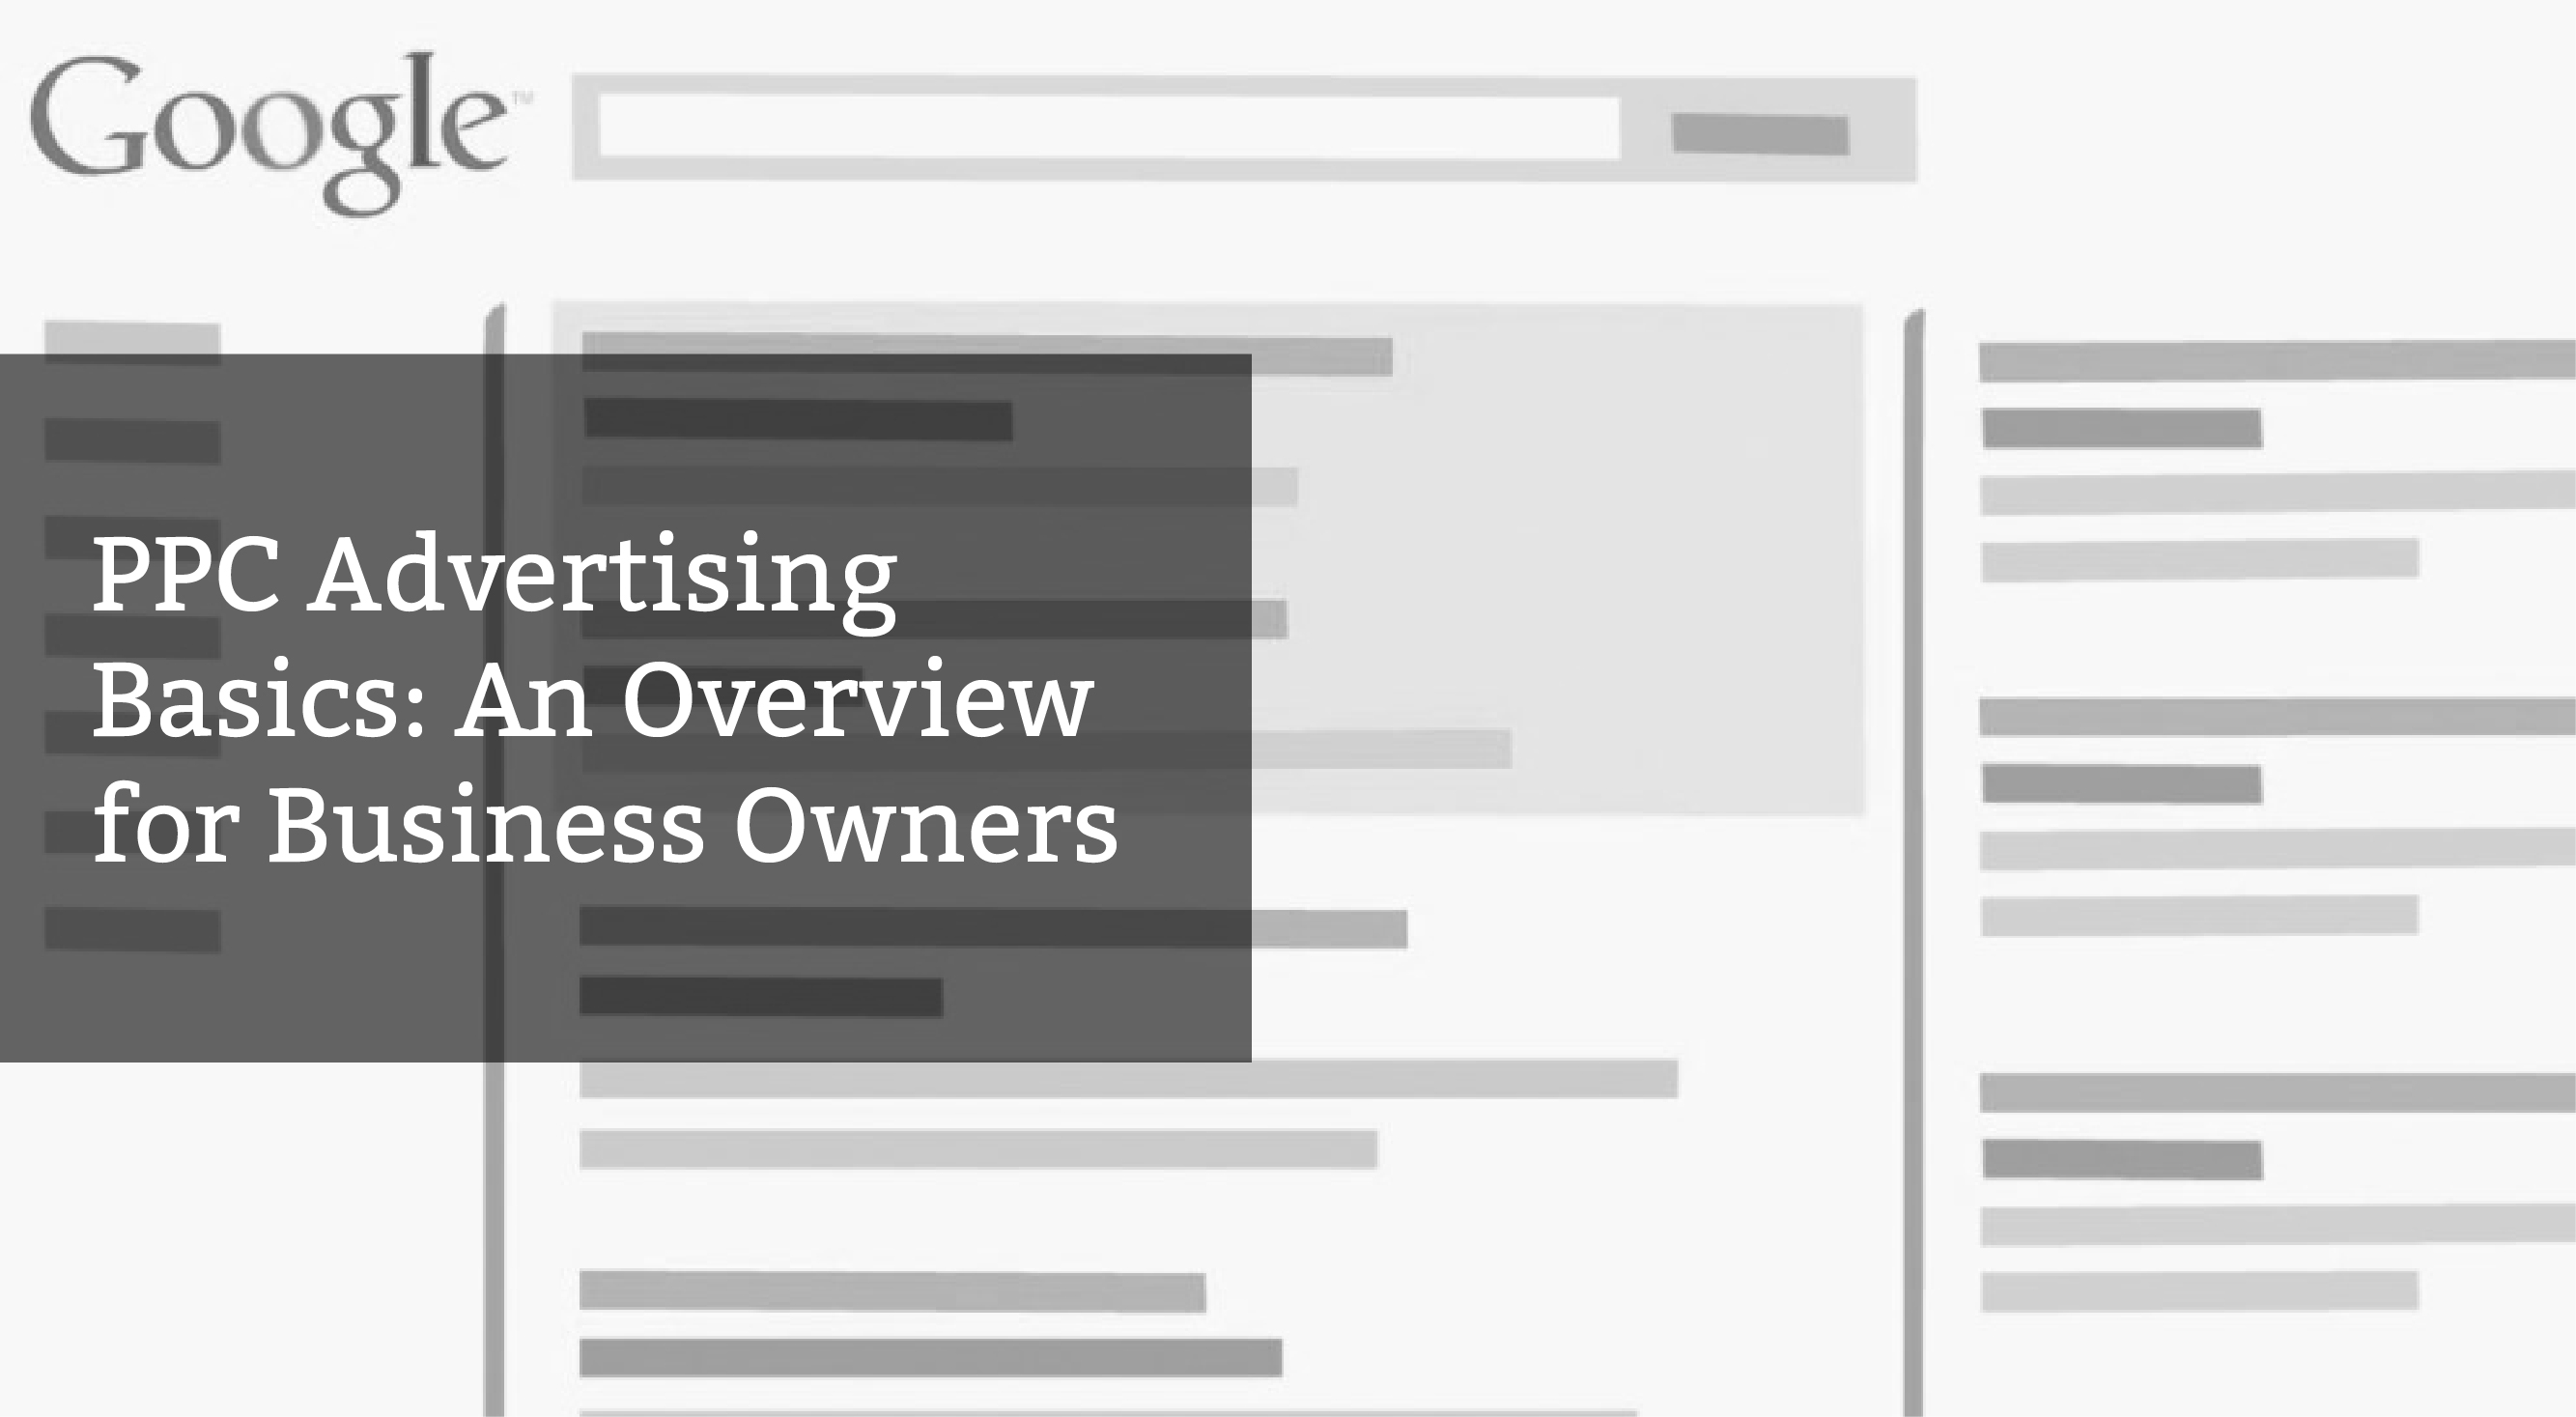 PPC Advertising Basics: An Overview for Business Owners